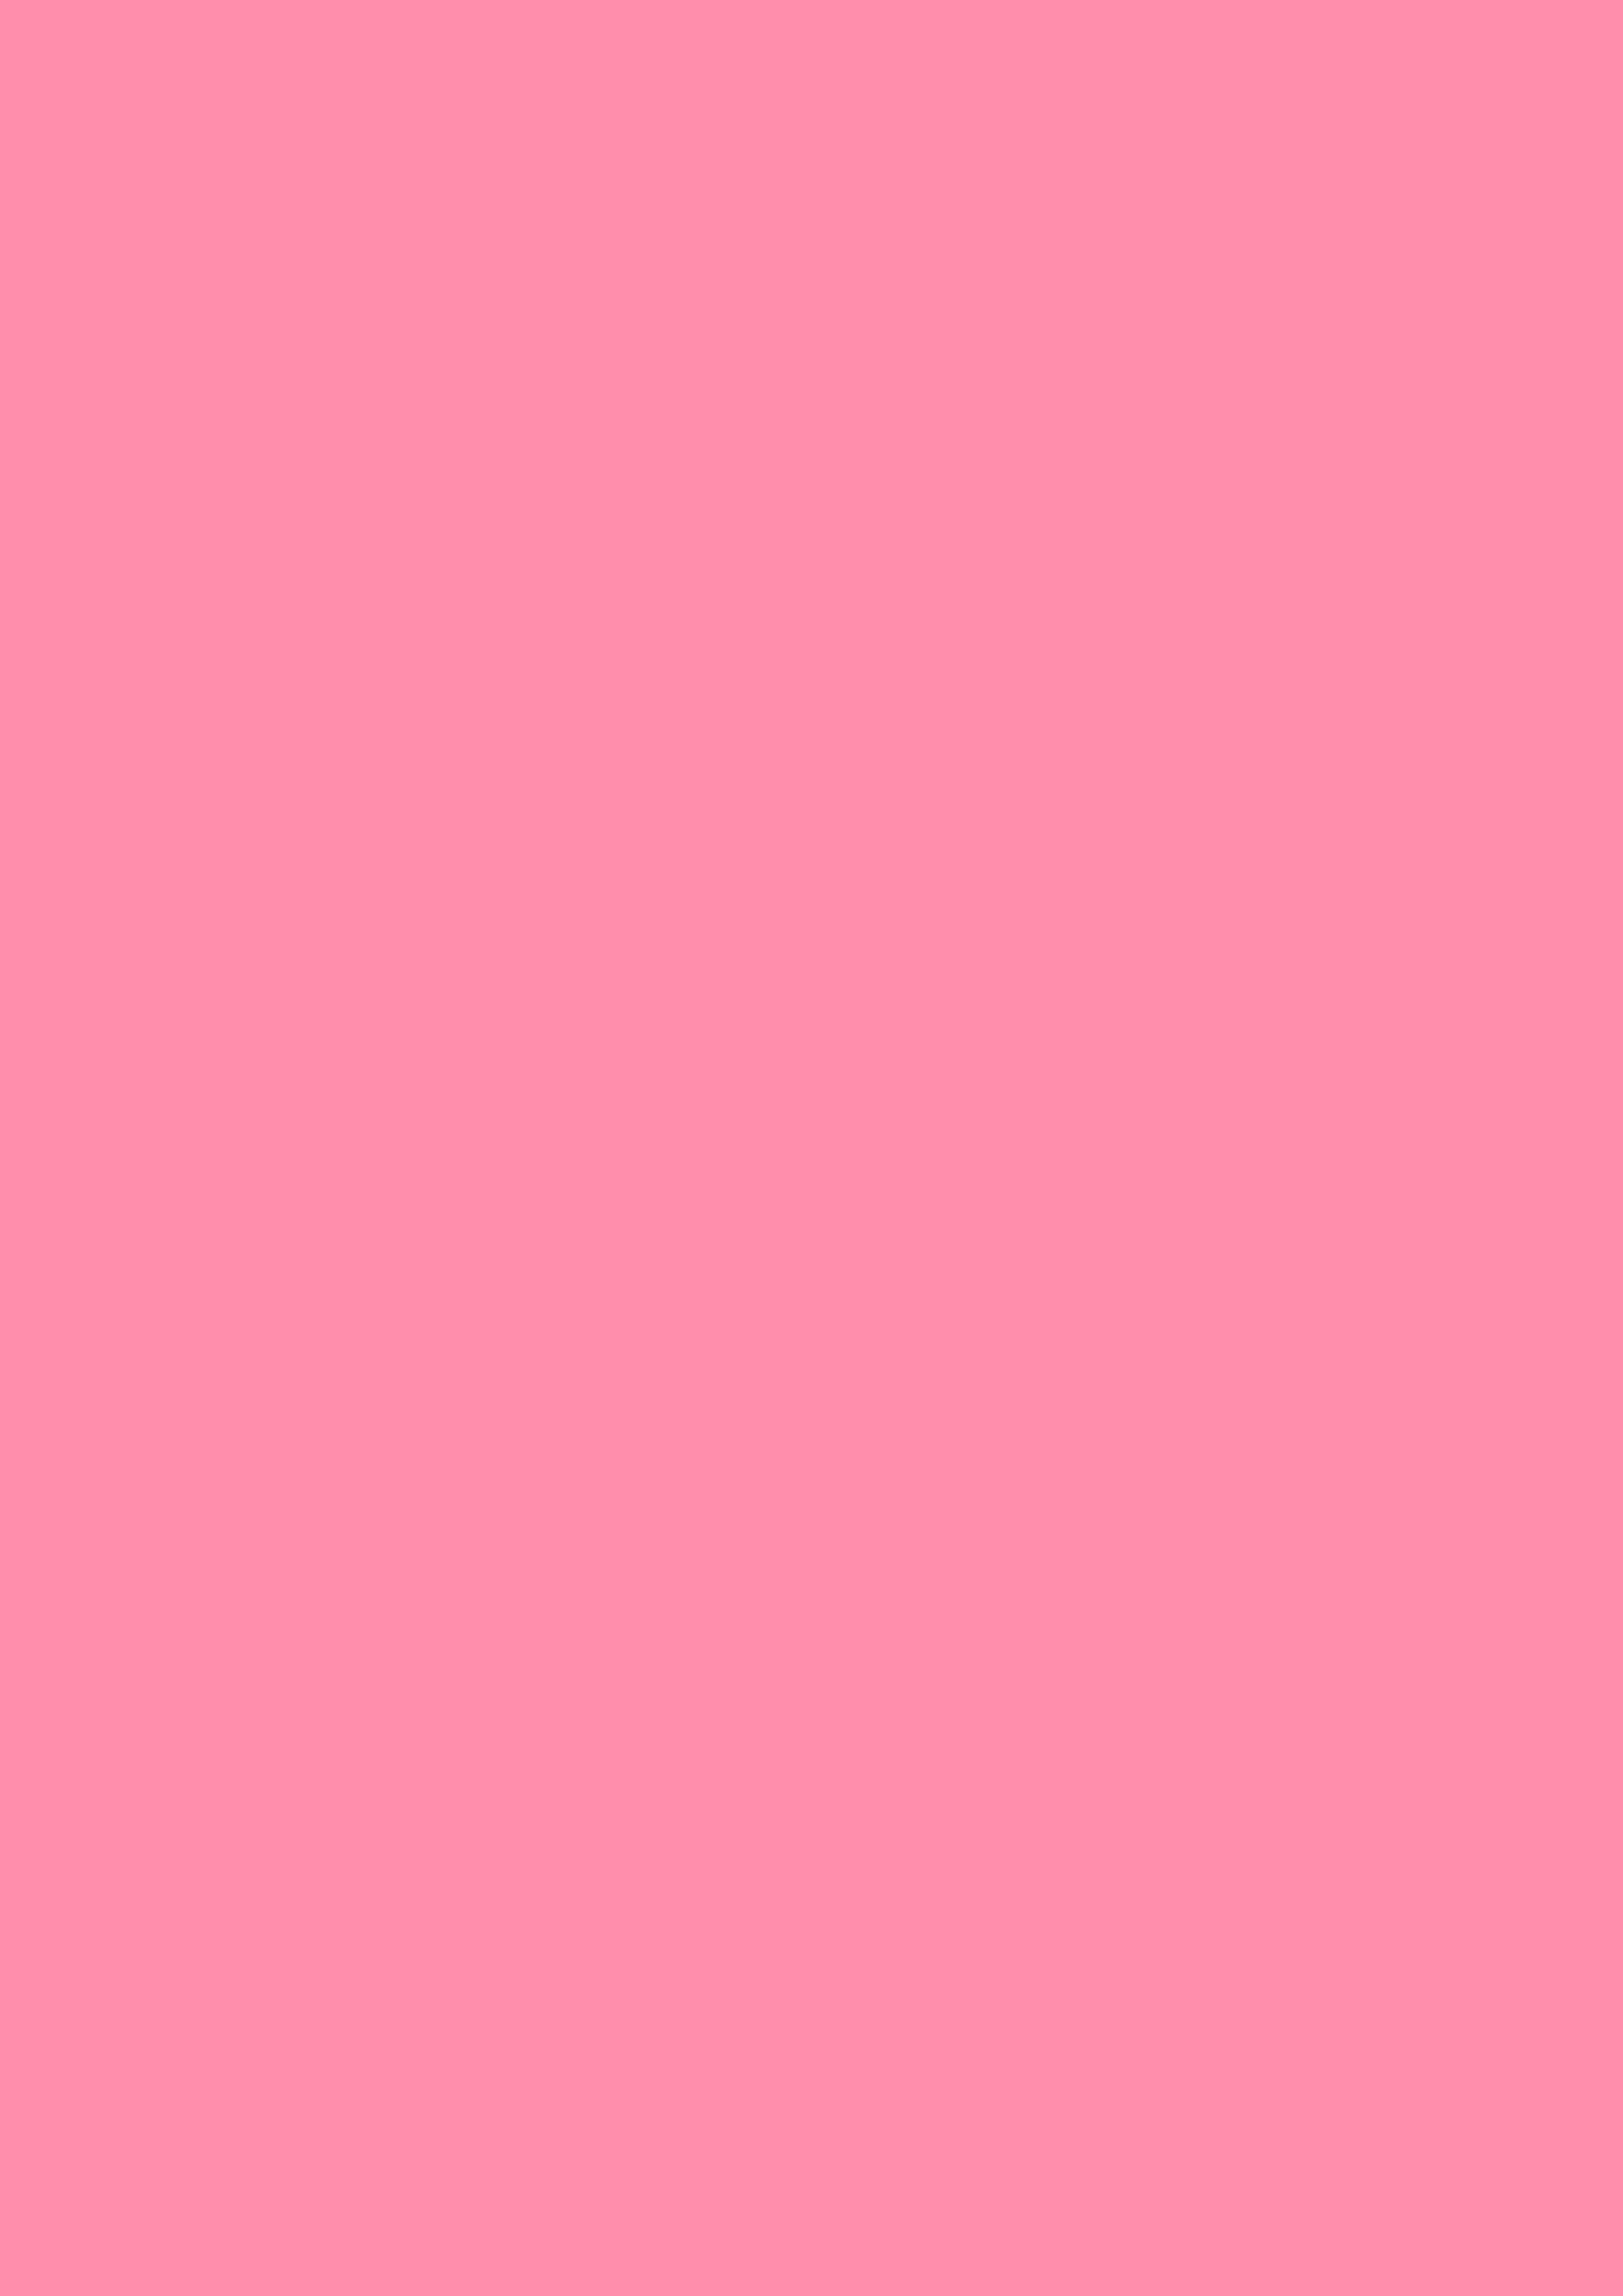 2480x3508 Flamingo Pink Solid Color Background